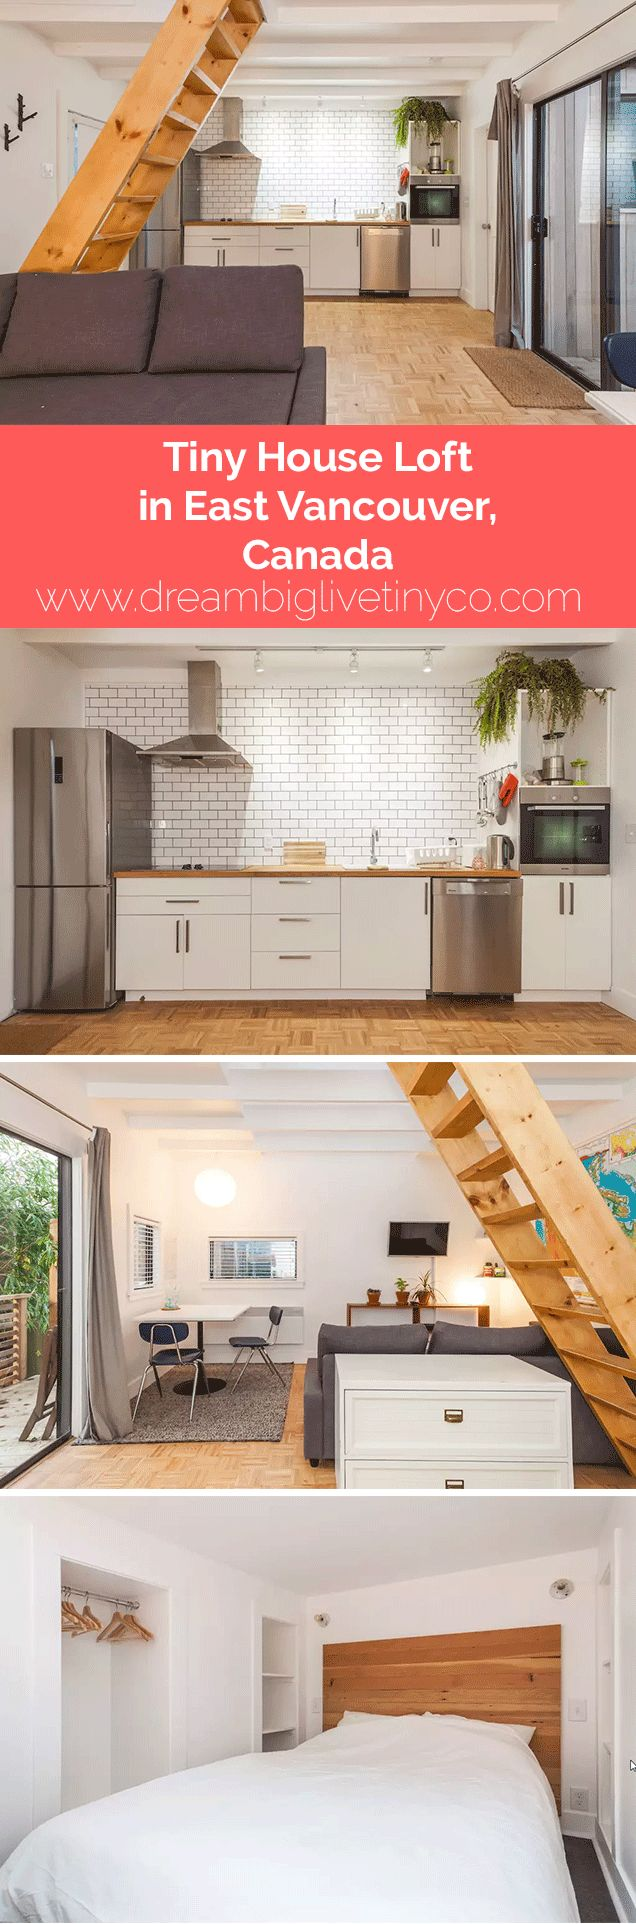 Tiny House Loft in East Vancouver, Canada